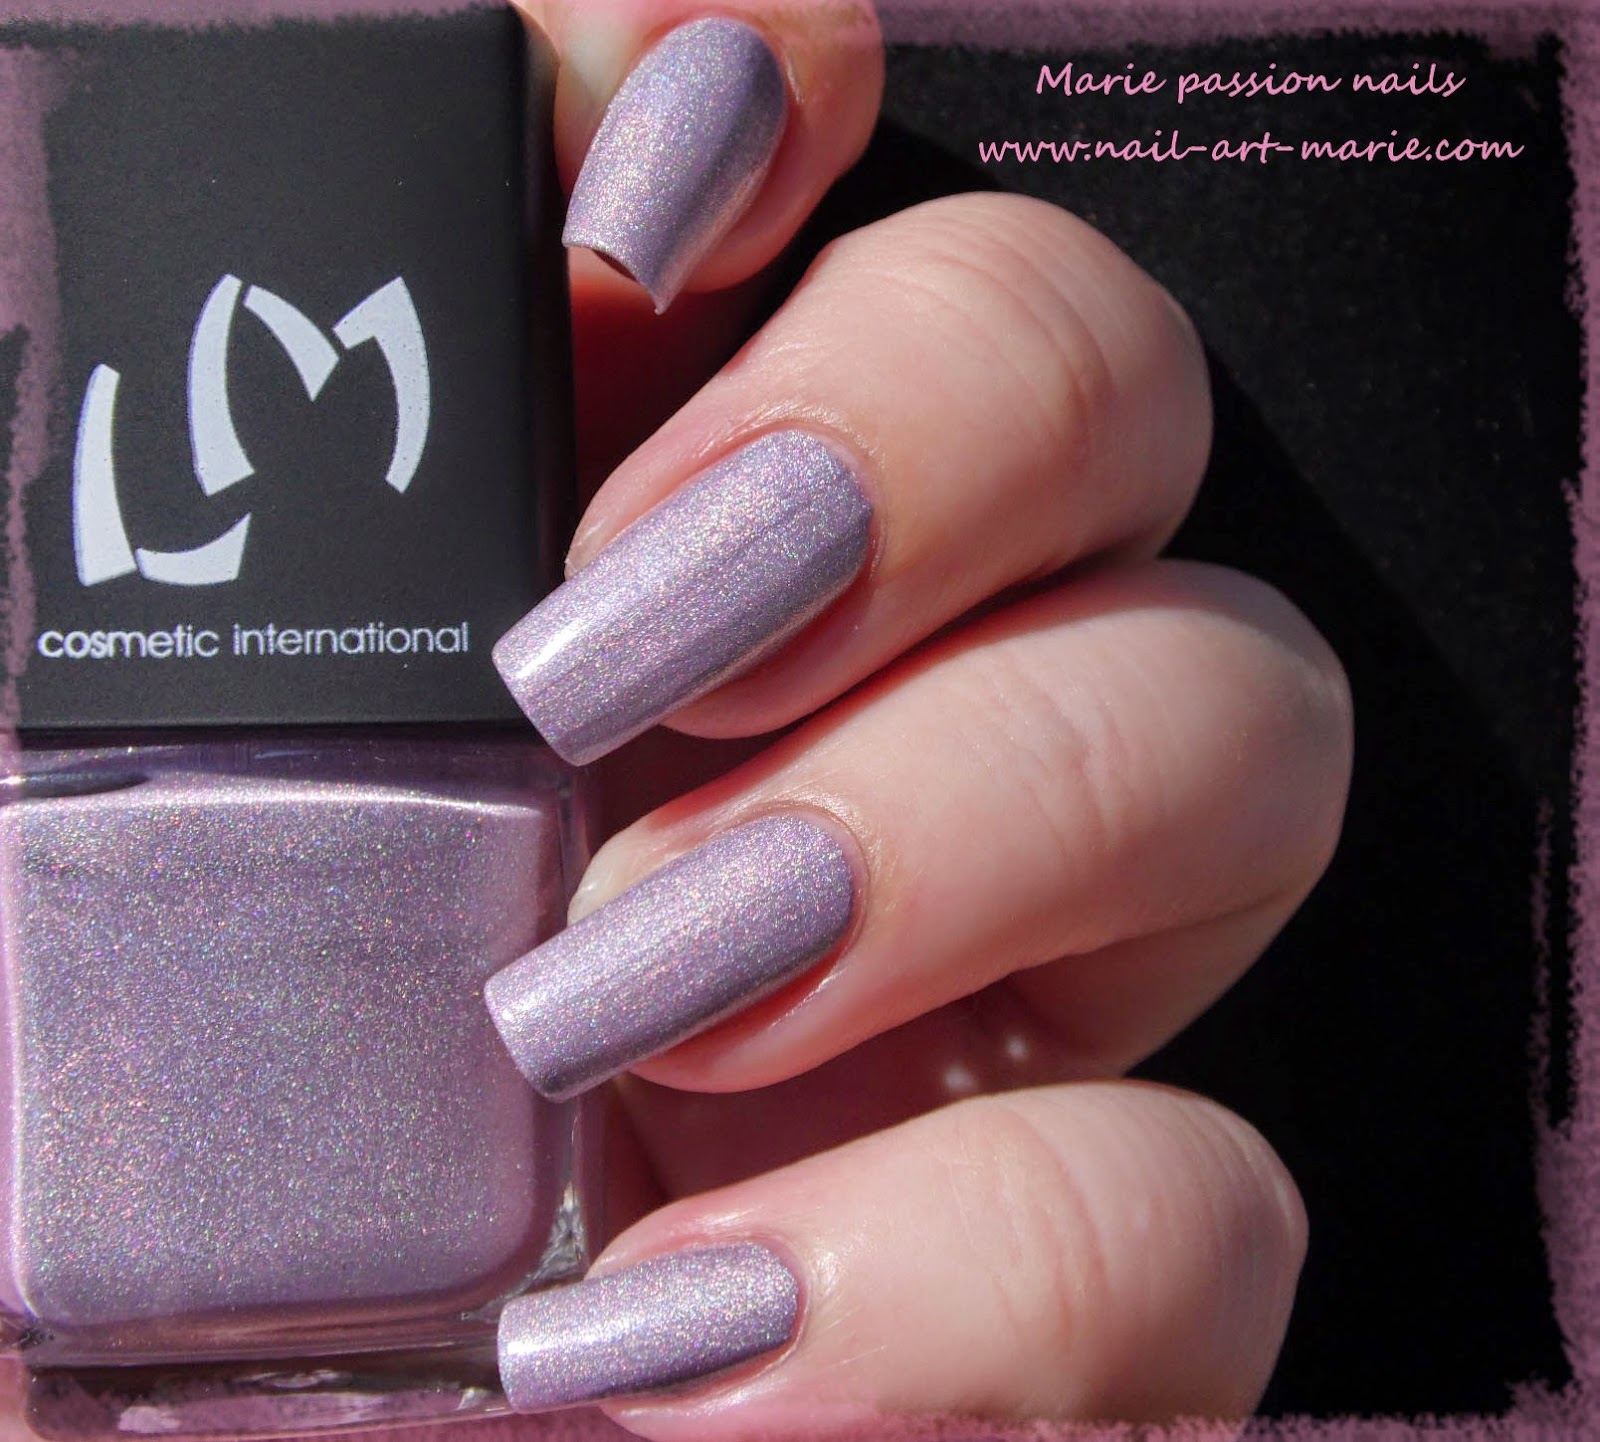 LM Cosmetic Battements3